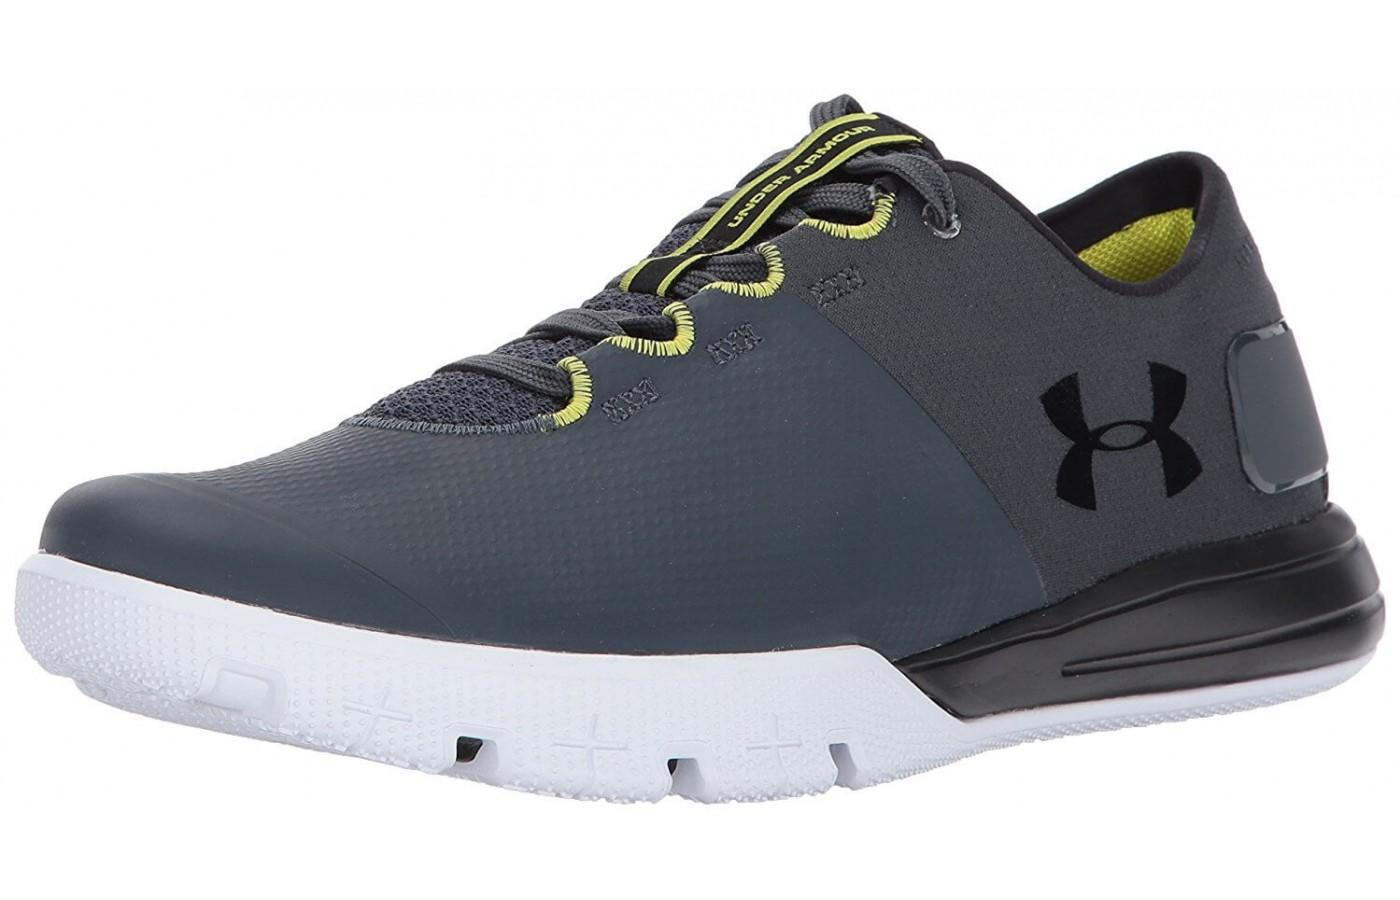 2L5P Under Armour Mens Ua Charged Ultimate Tr Low Shoes Reasonable Adjustable